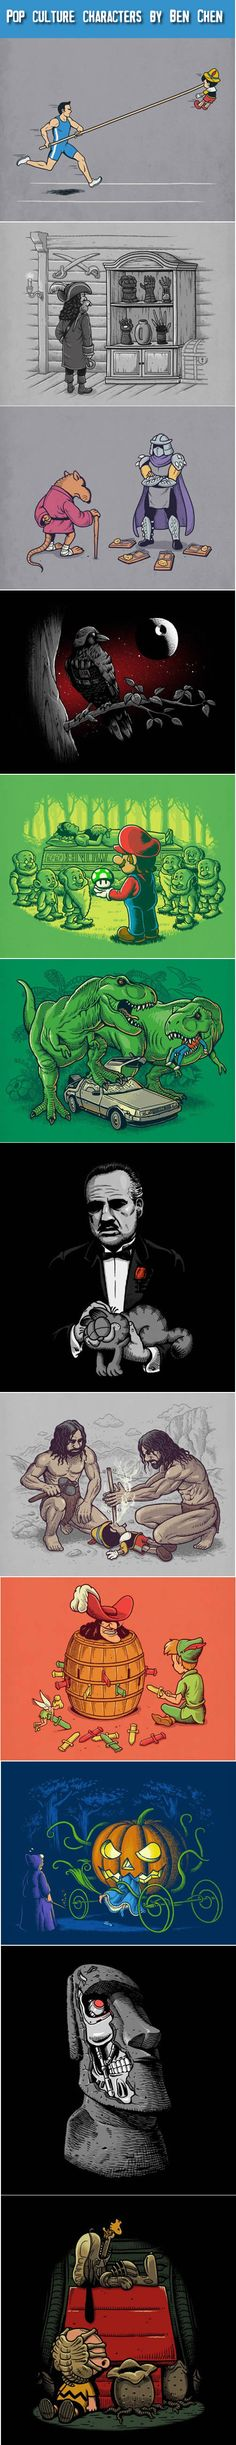 Pop Culture Characters: Twisted illustrations by Ben Chen.